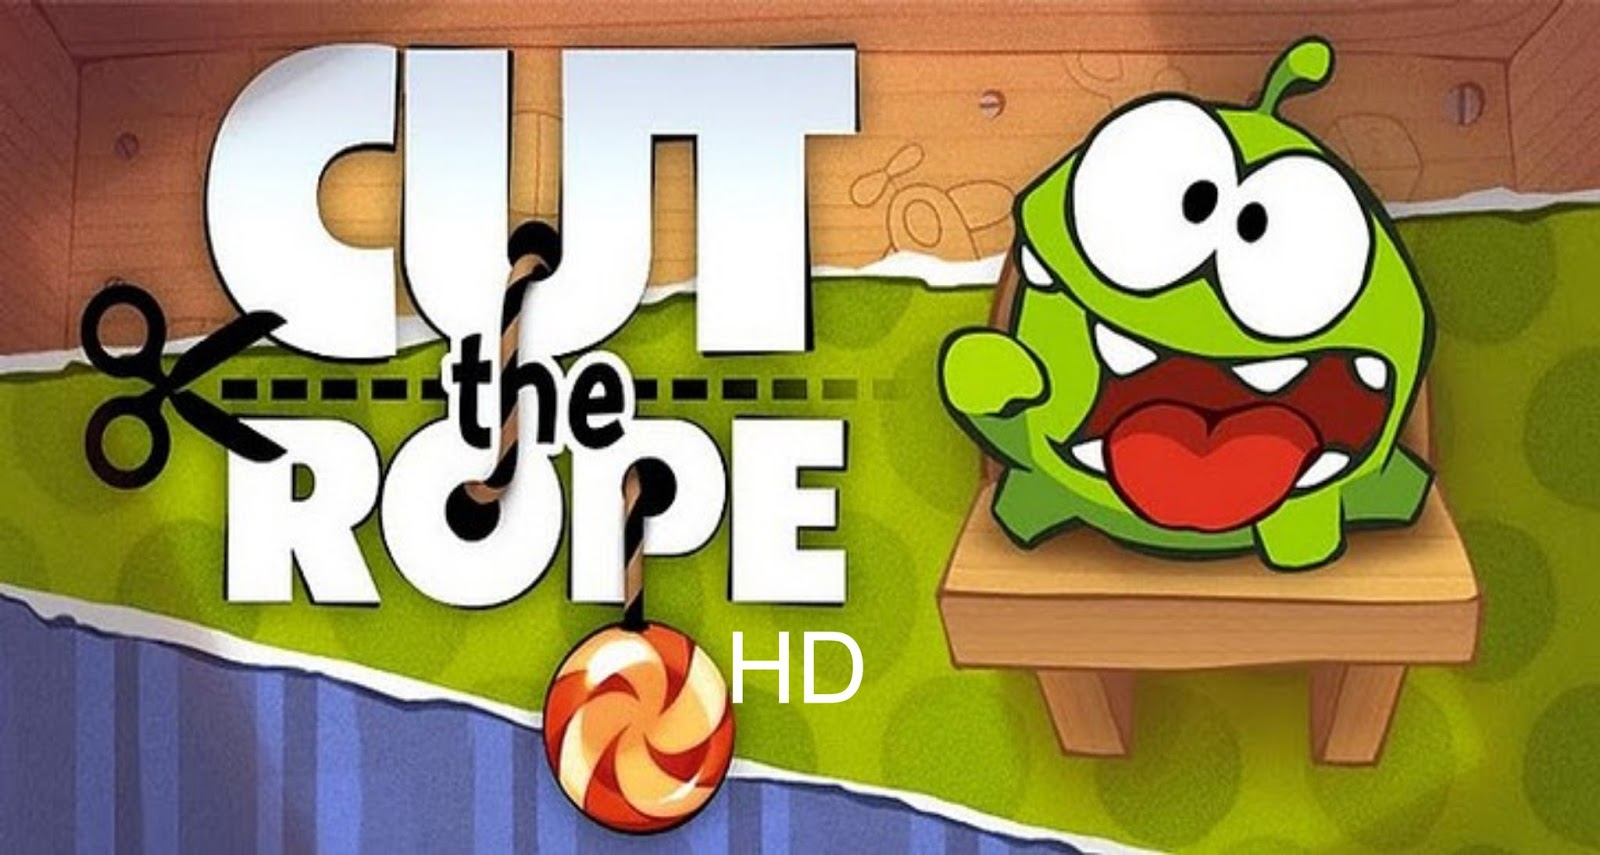 cut the rope game free